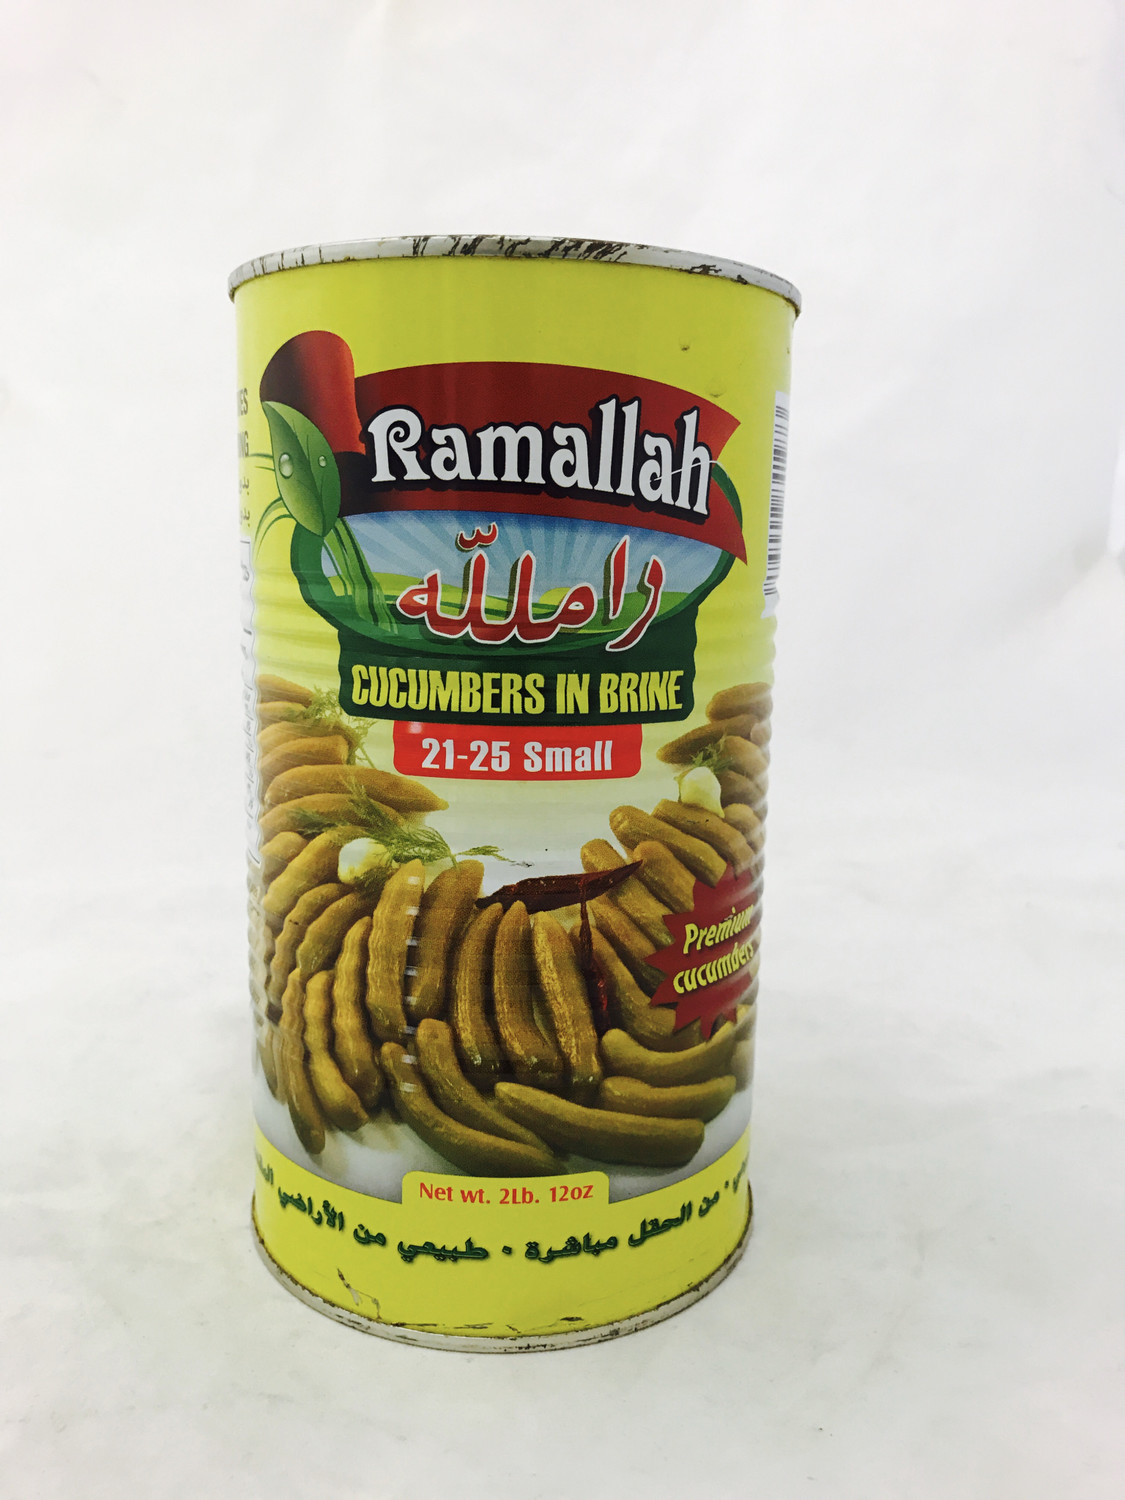 Ramallah cucumber pickle count  21/25 can 12 x2lb 12oz